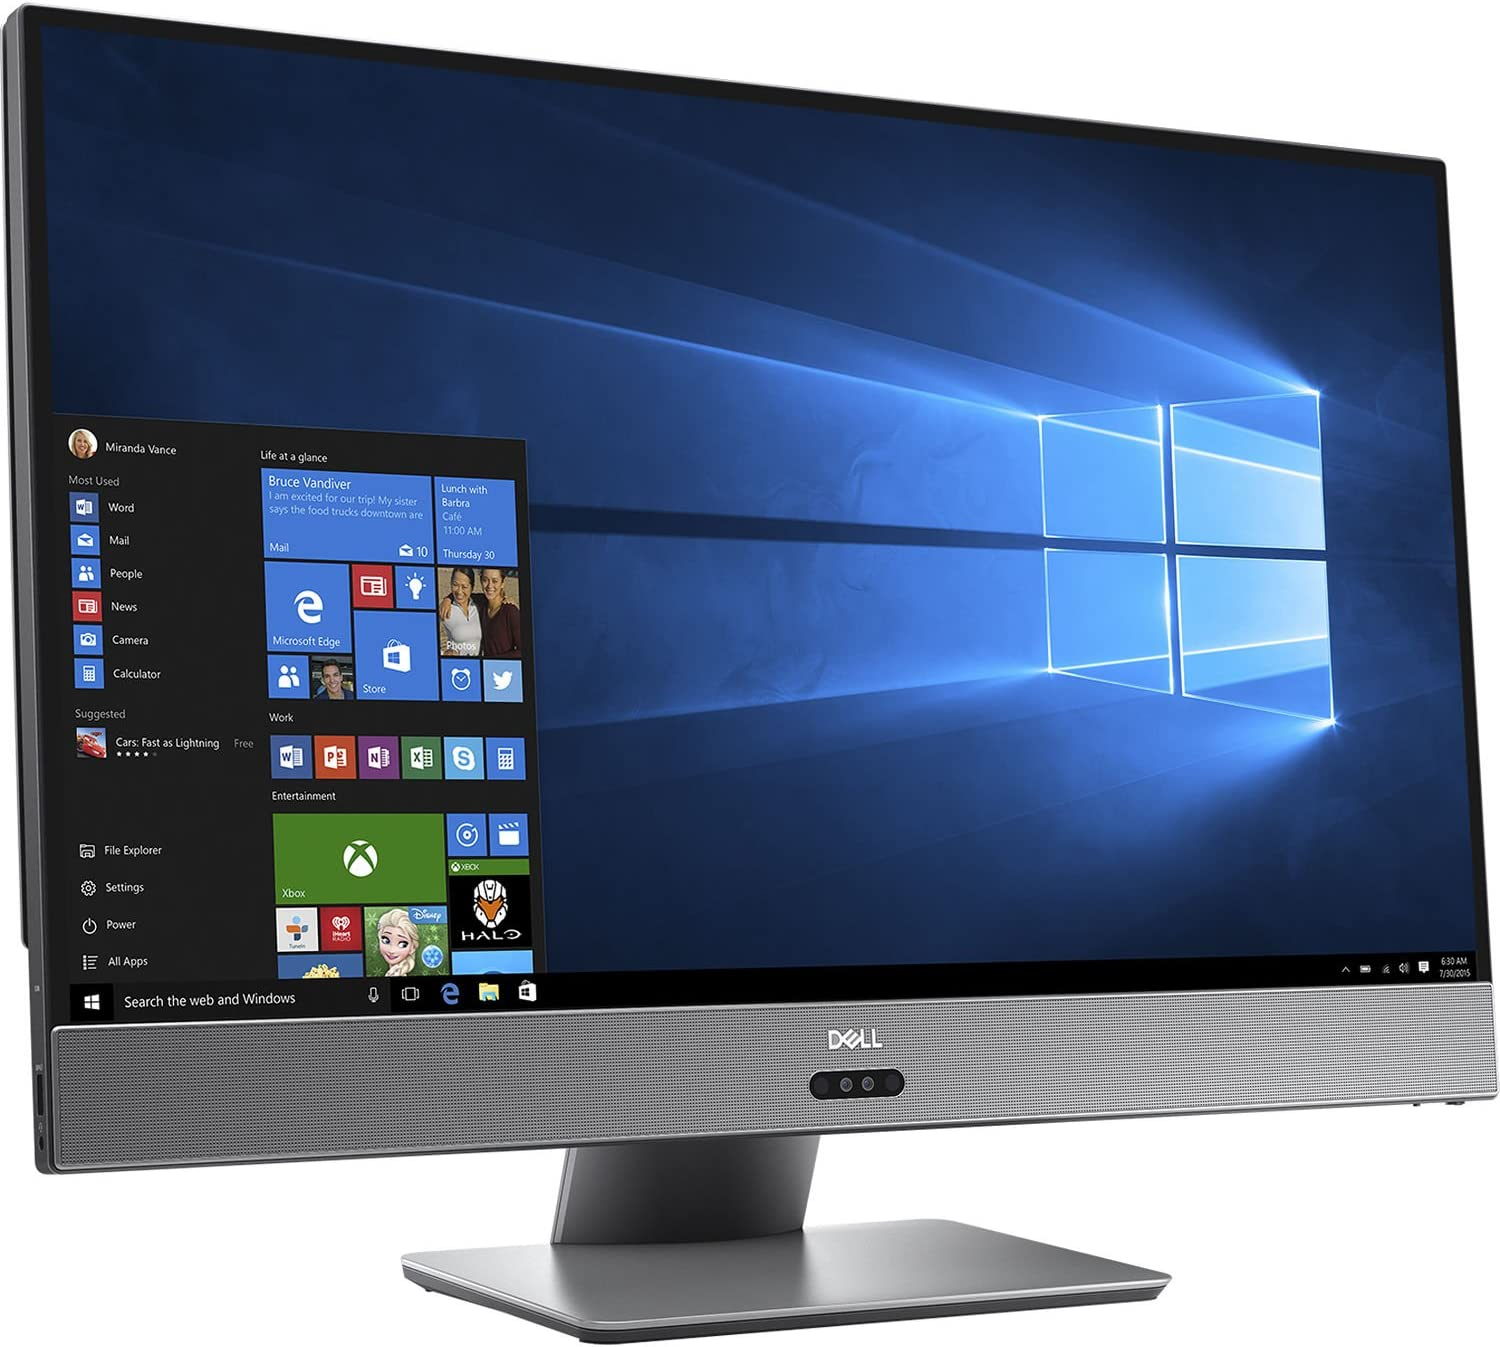 Dell Inspiron 7775 27in FHD All-in-One Desktop PC - AMD Ryzen 5 1400 3.2GHz, 8GB, 1TB HDD, AMD Radeon RX 580 8GB Graphics, Bluetooth, Wi-Fi, Windows 10 Home (Renewed)